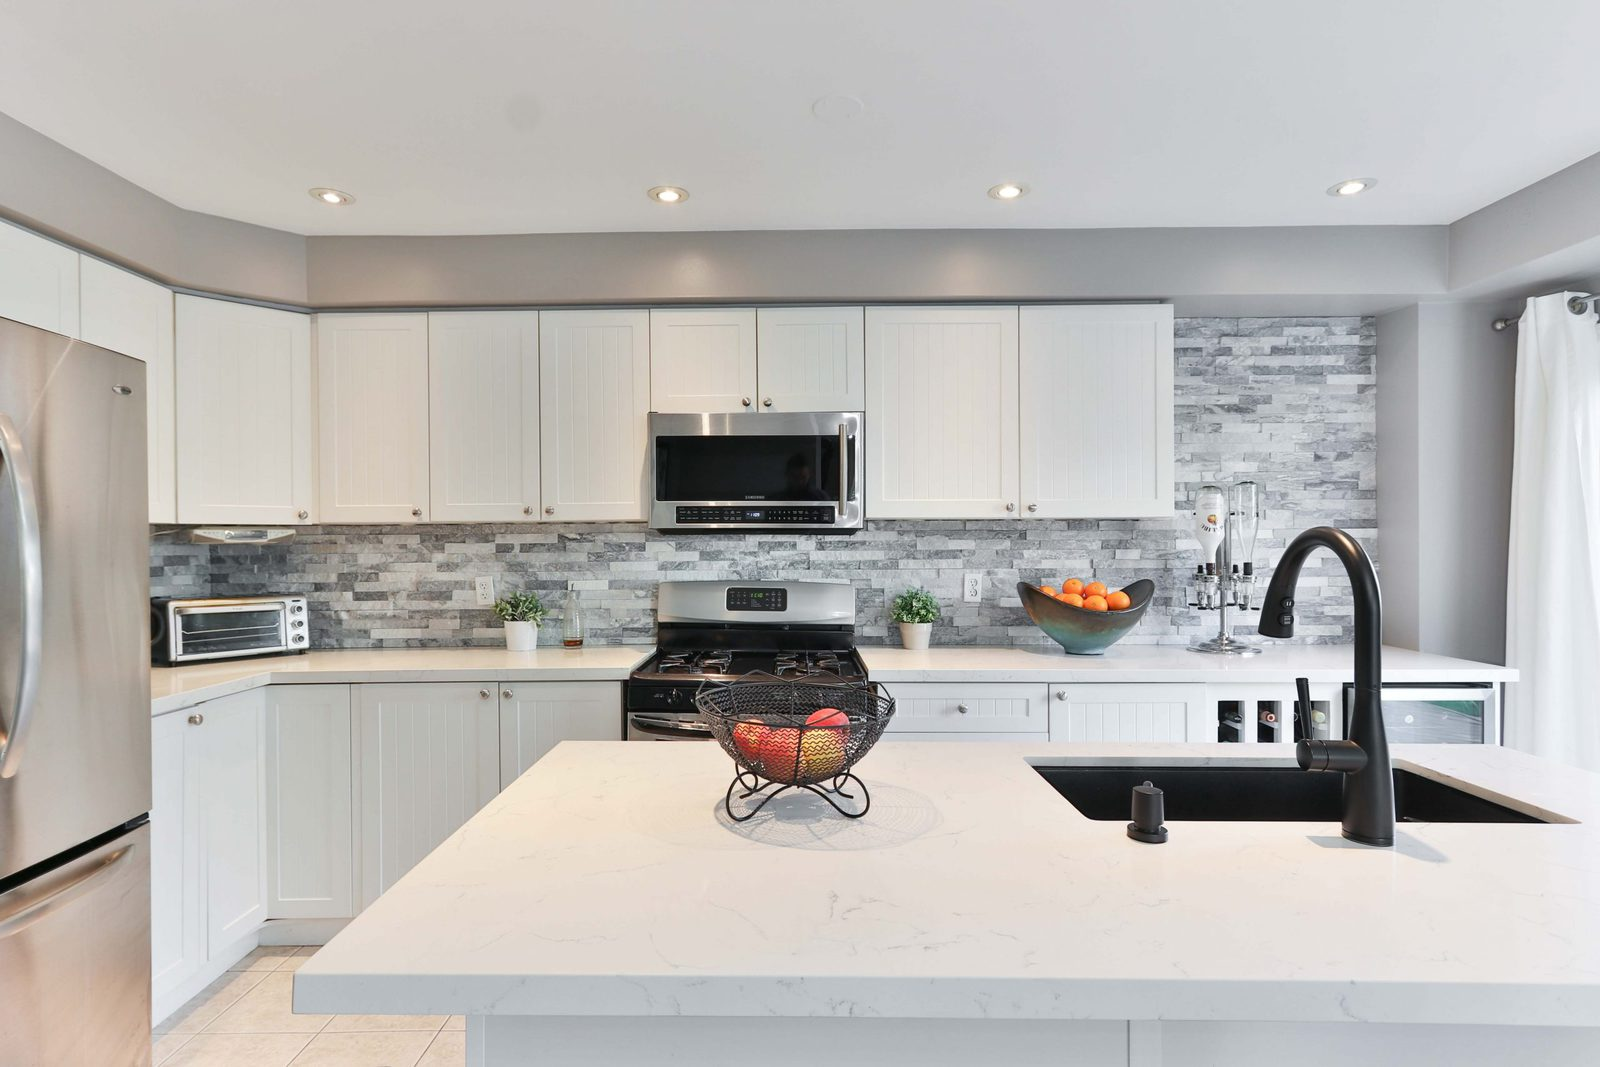 How To Choose The Right Stone For Your Great Falls Kitchen Remodel